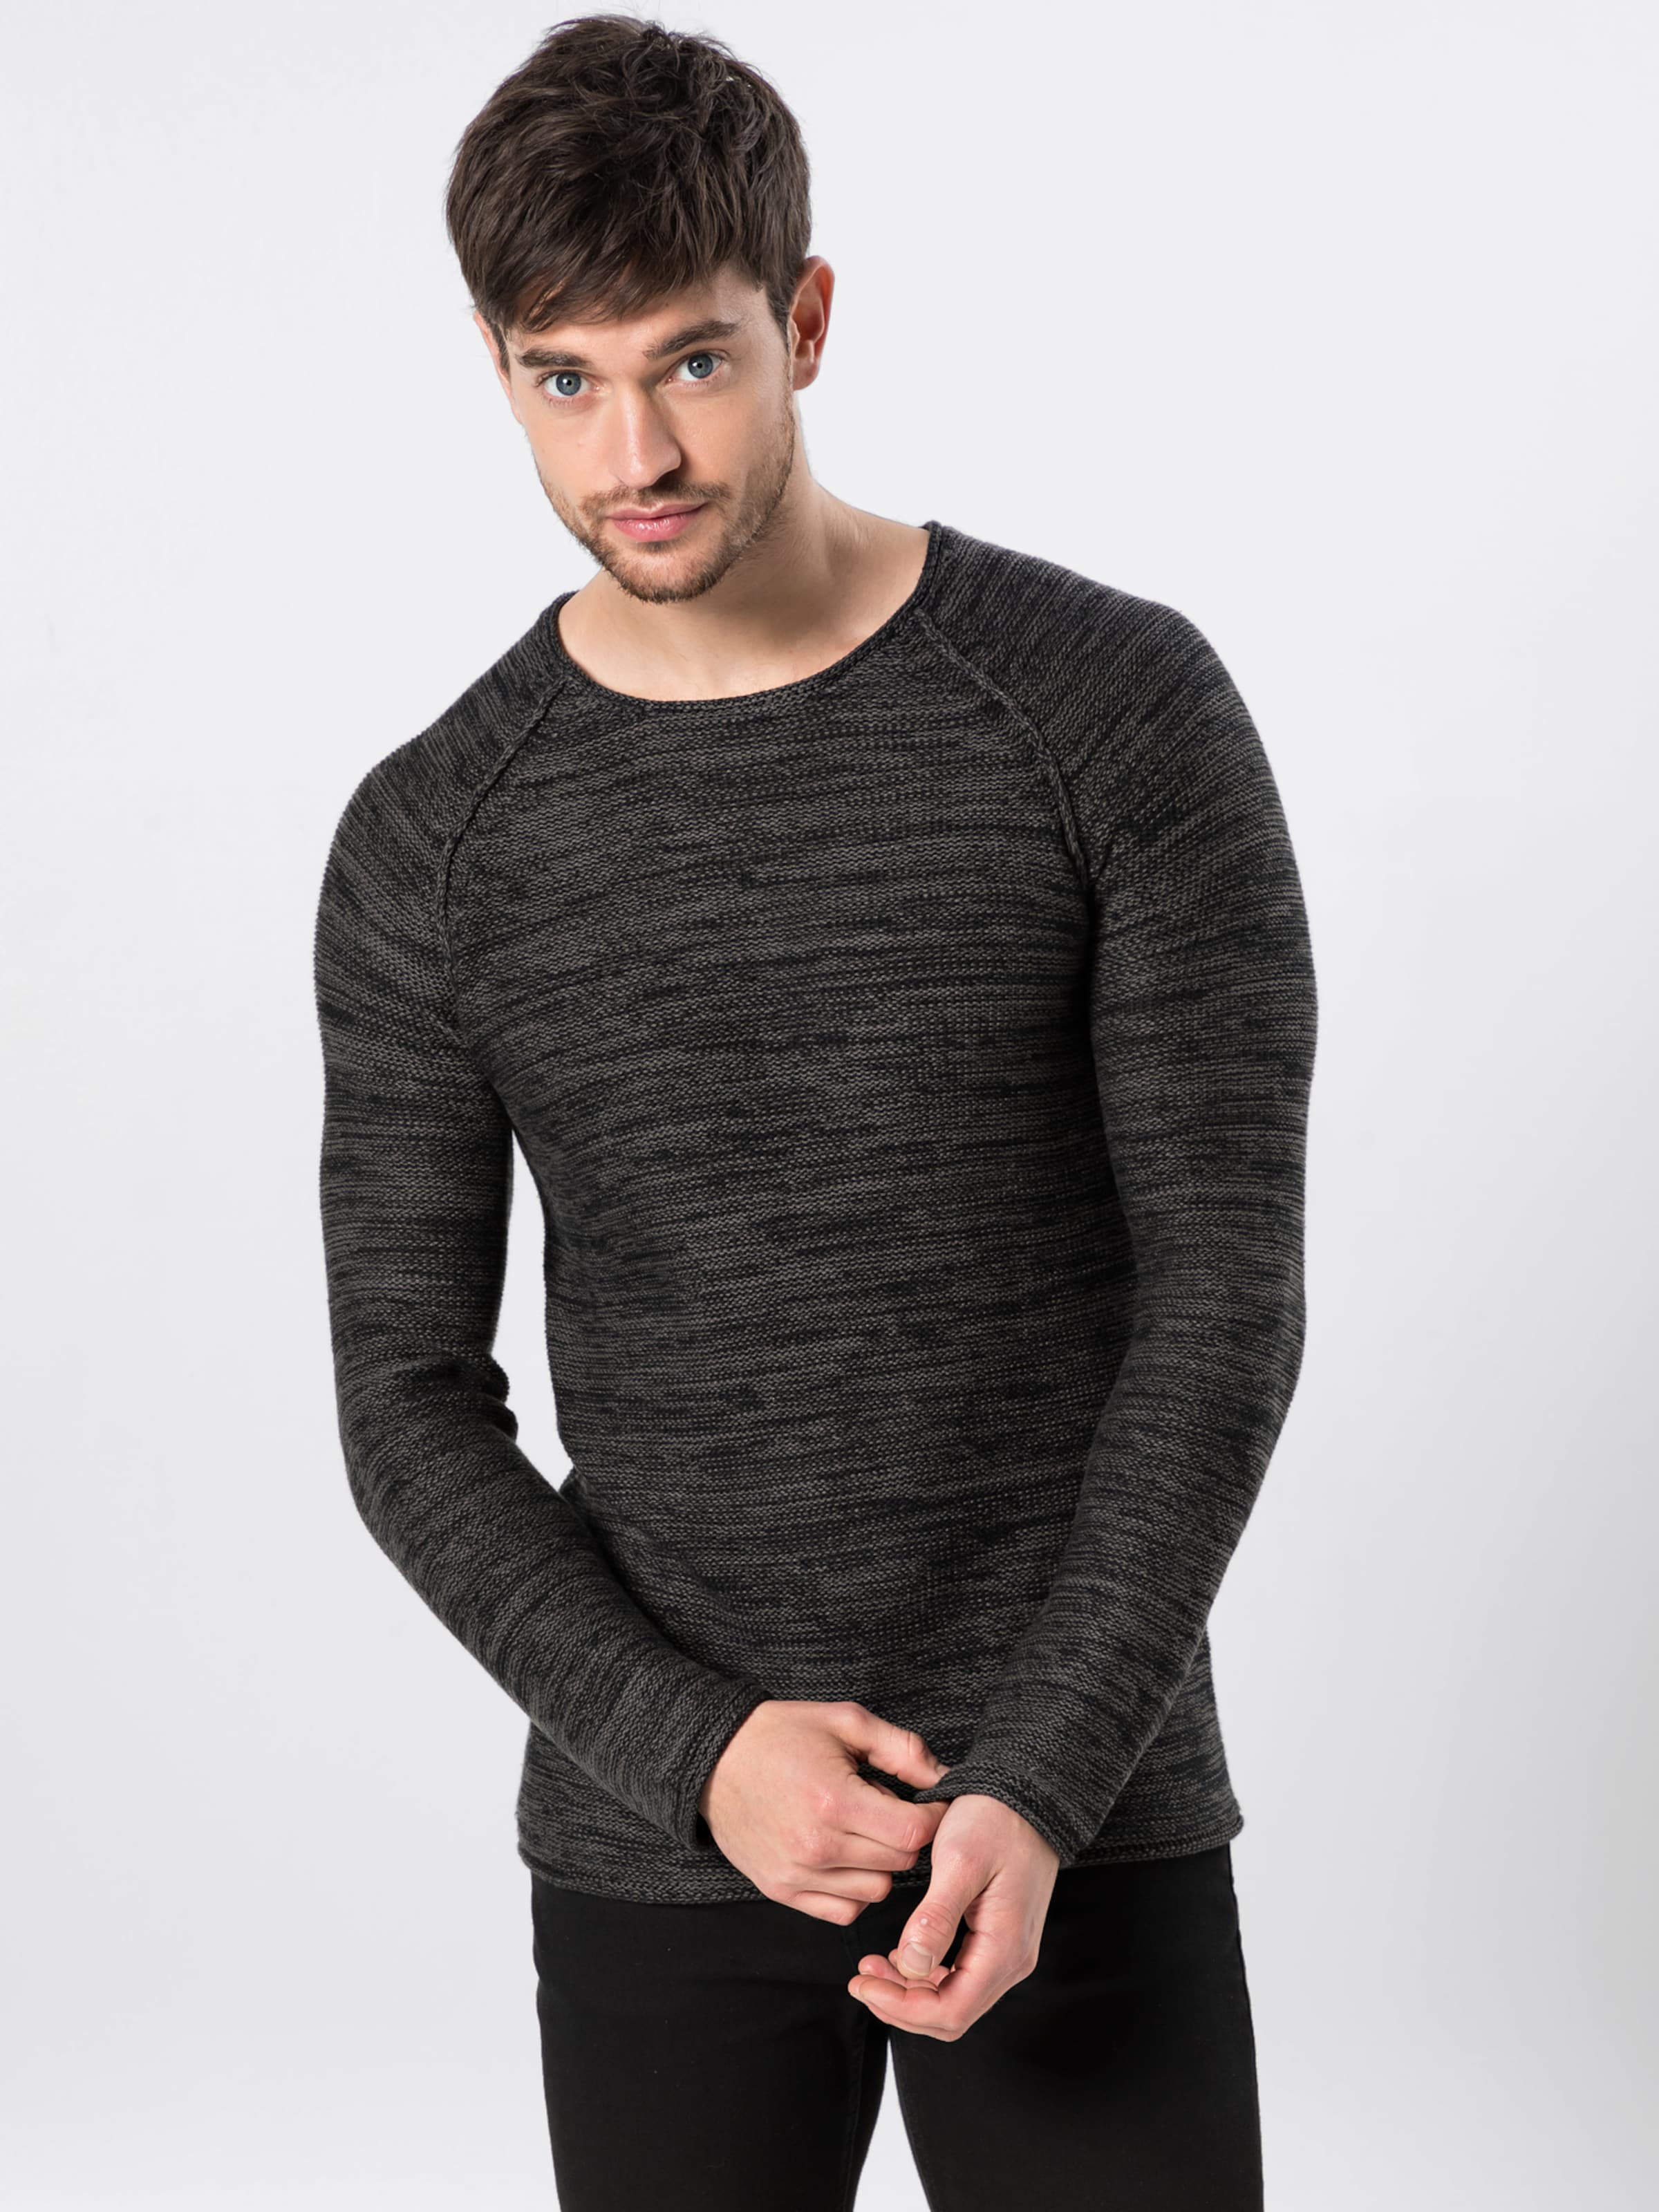 Pull En En Anthracite Review over Review Pull over Pull over Anthracite Review MVpGSqUz